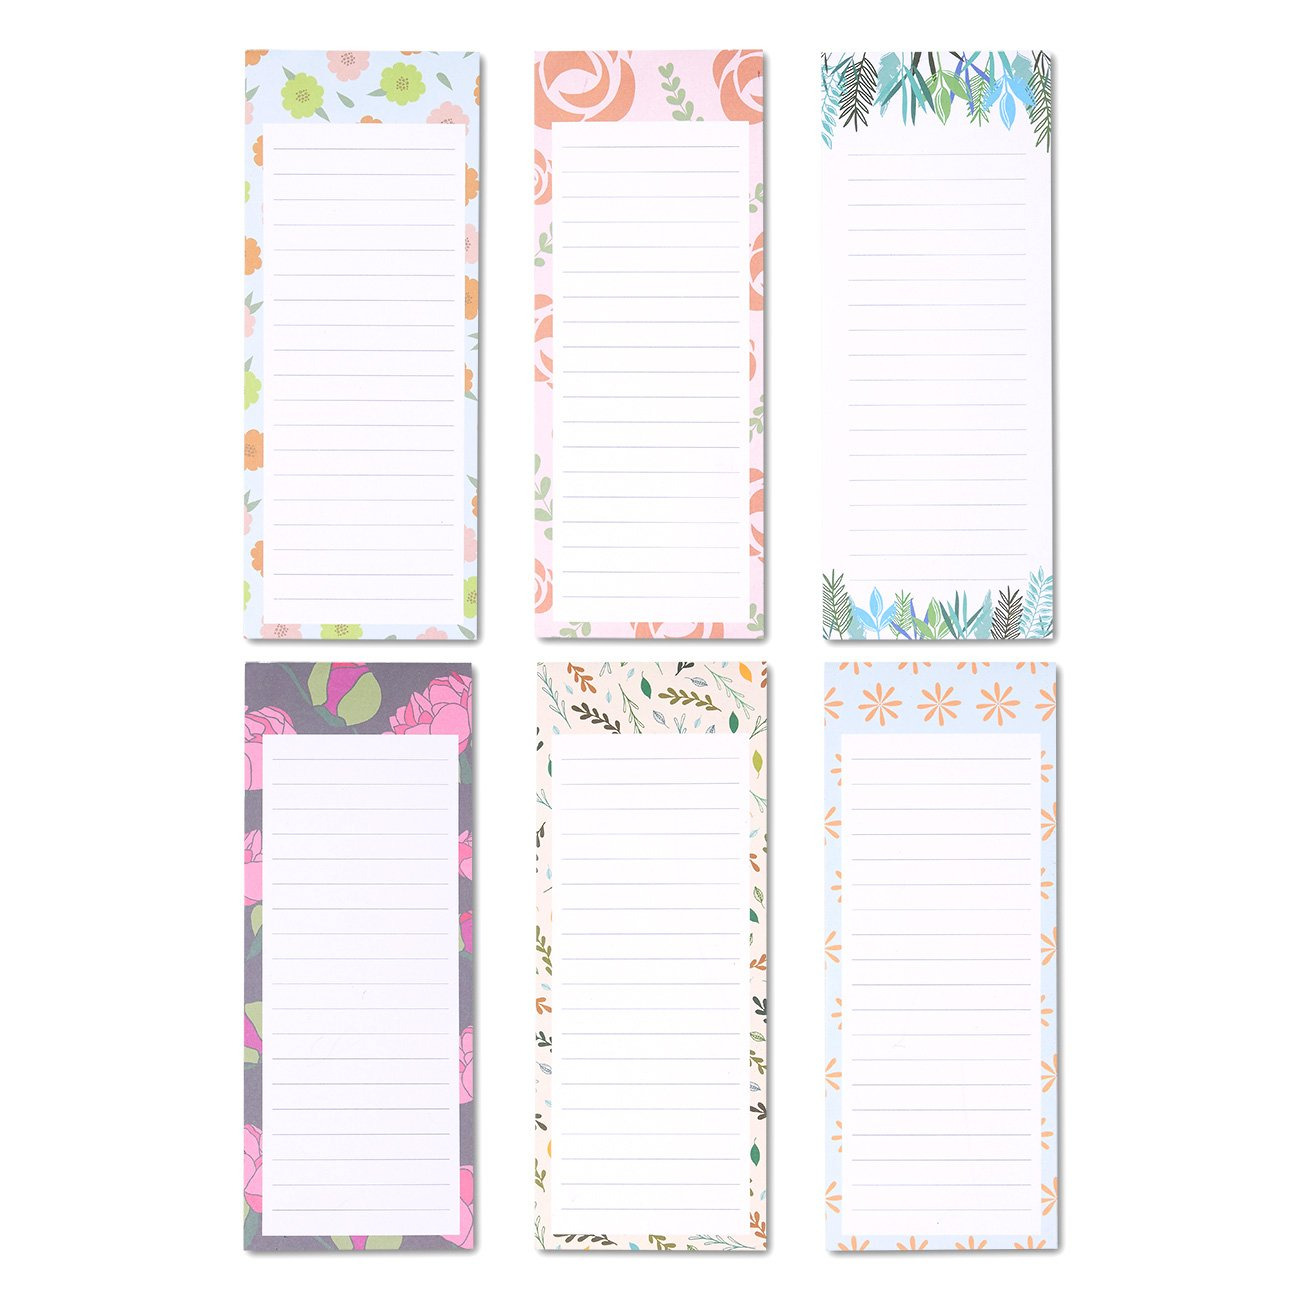 To-do-List Notepad – 6-Pack Magnetic Notepad, Grocery List Magnet Pad Stationery for To Do List, Floral Designs, 60 Sheets Per Pad